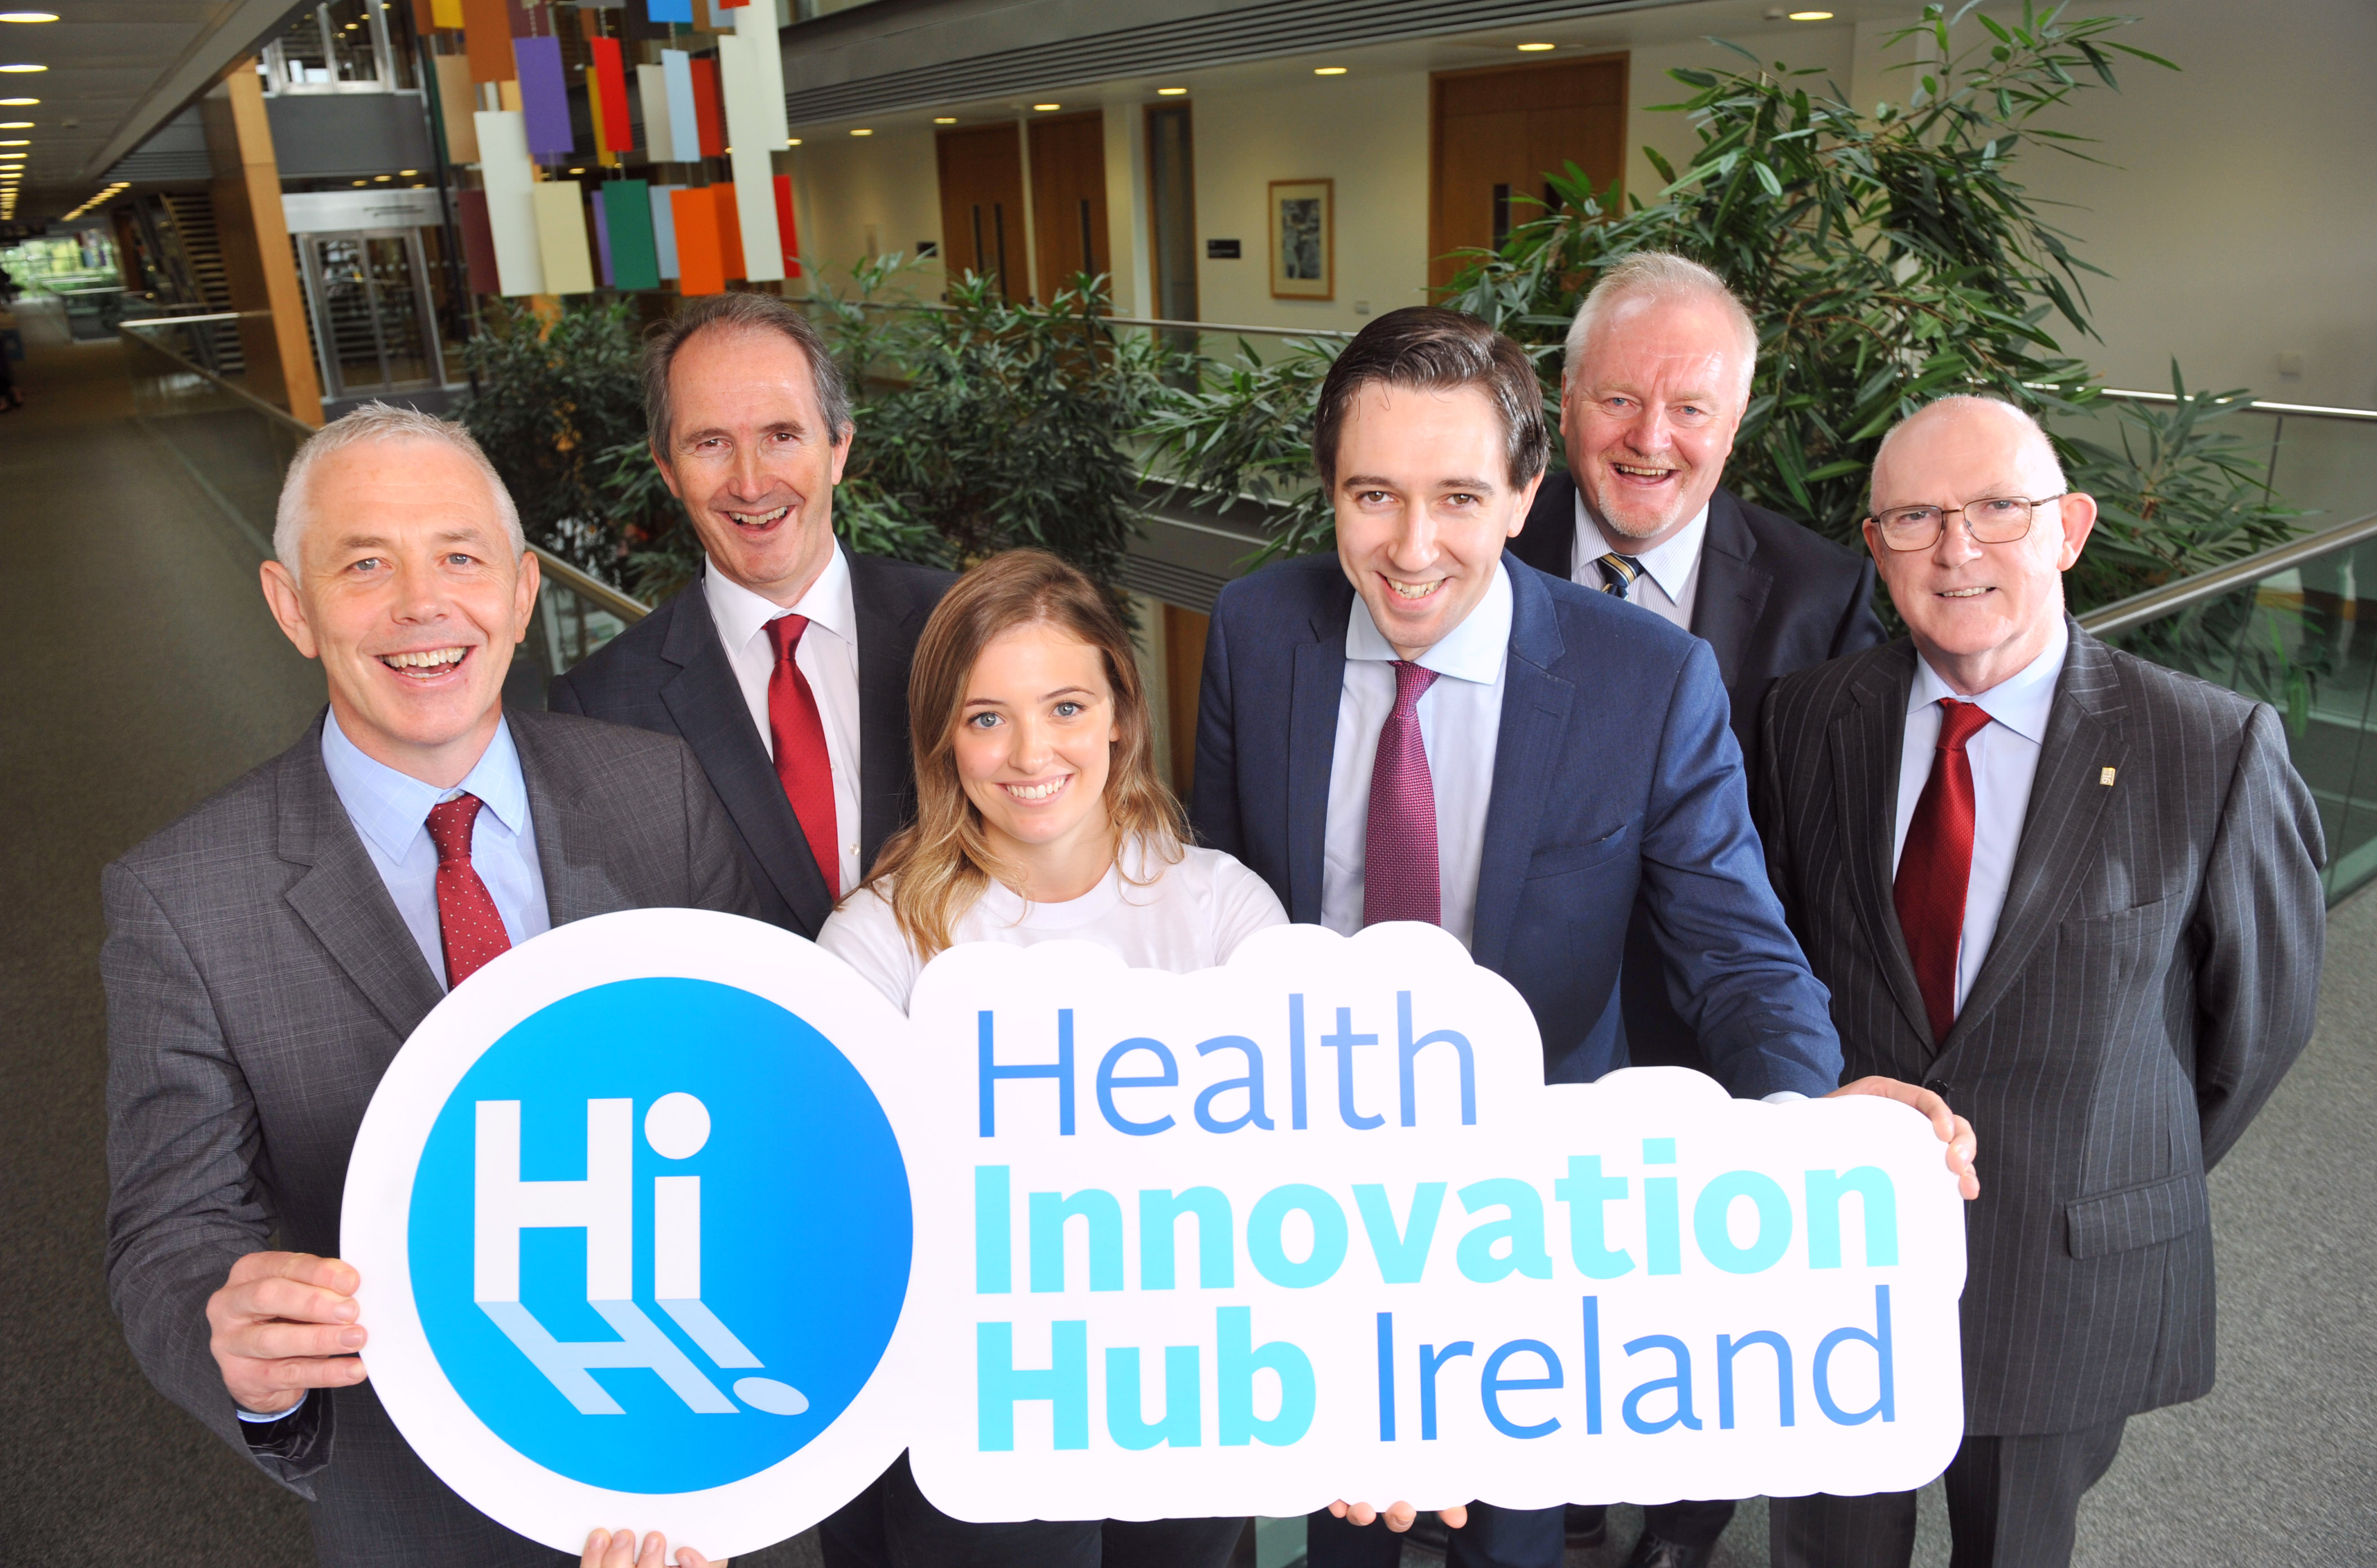 Health Innovation Hub Ireland launched by Minister Simon Harris TD